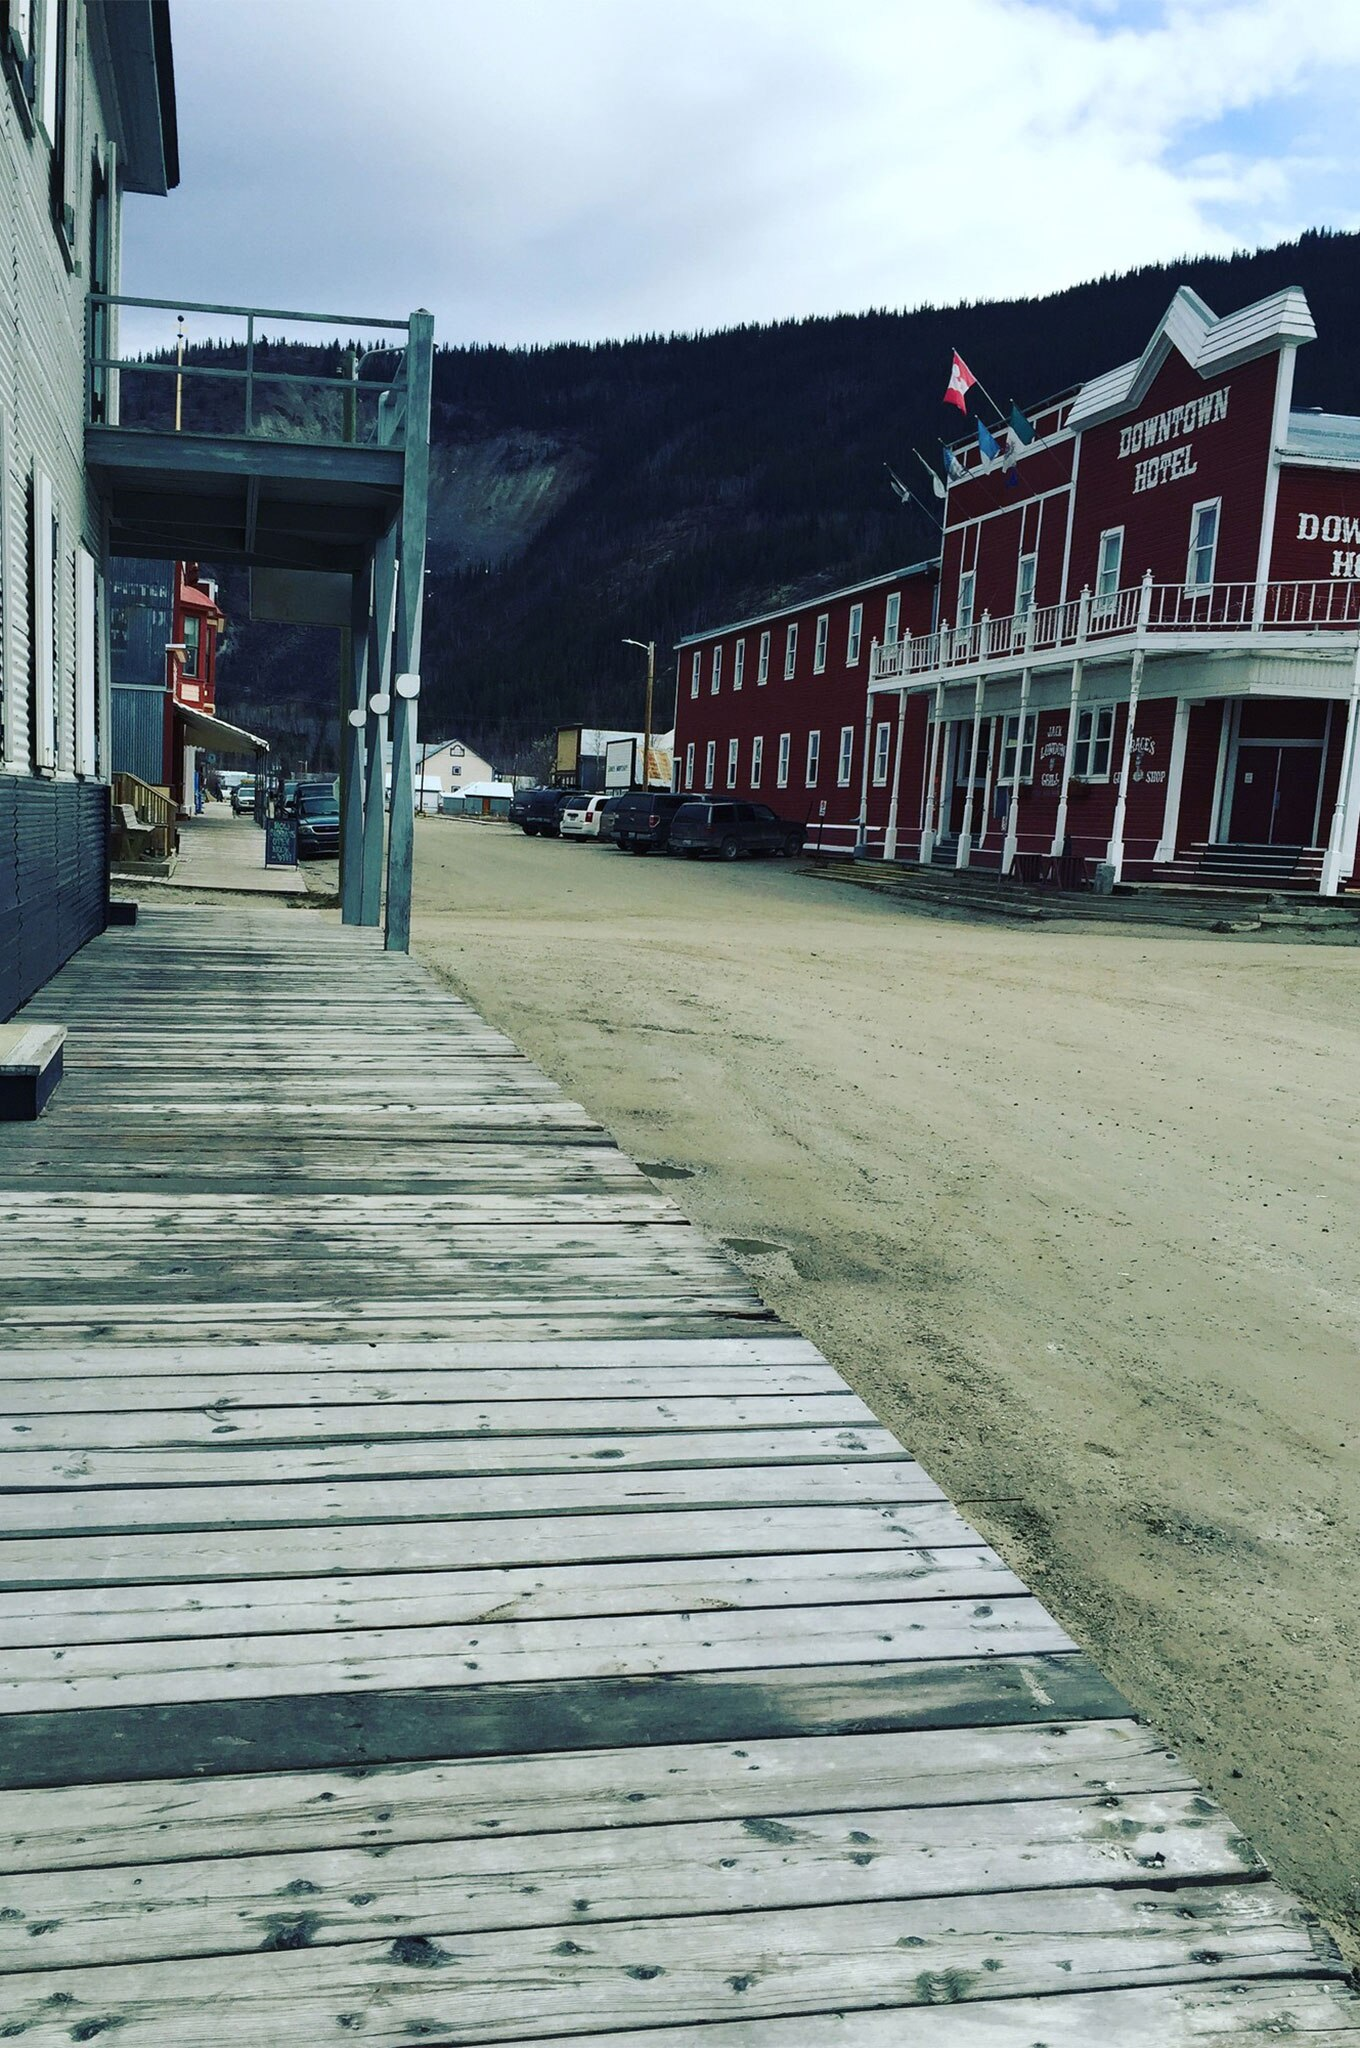 The Wild West feel of Dawson, with raised wooden sidewalks and brightly painted buildings, was reminiscent of old cowboy movies.